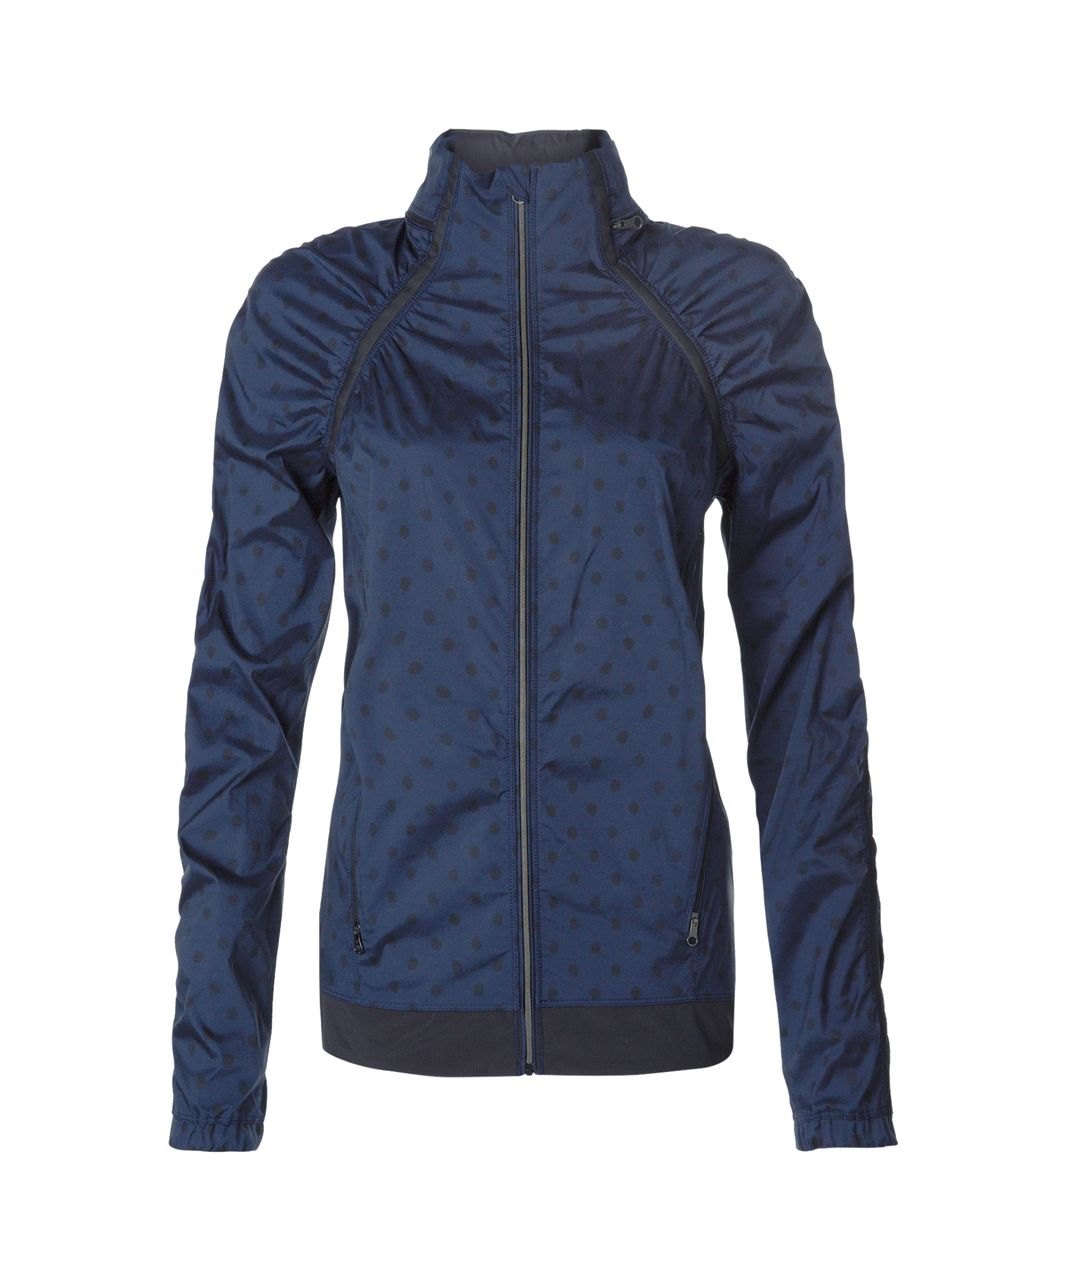 Lululemon Gather And Sprint Jacket - Ghost Dot Deep Navy Black / Black